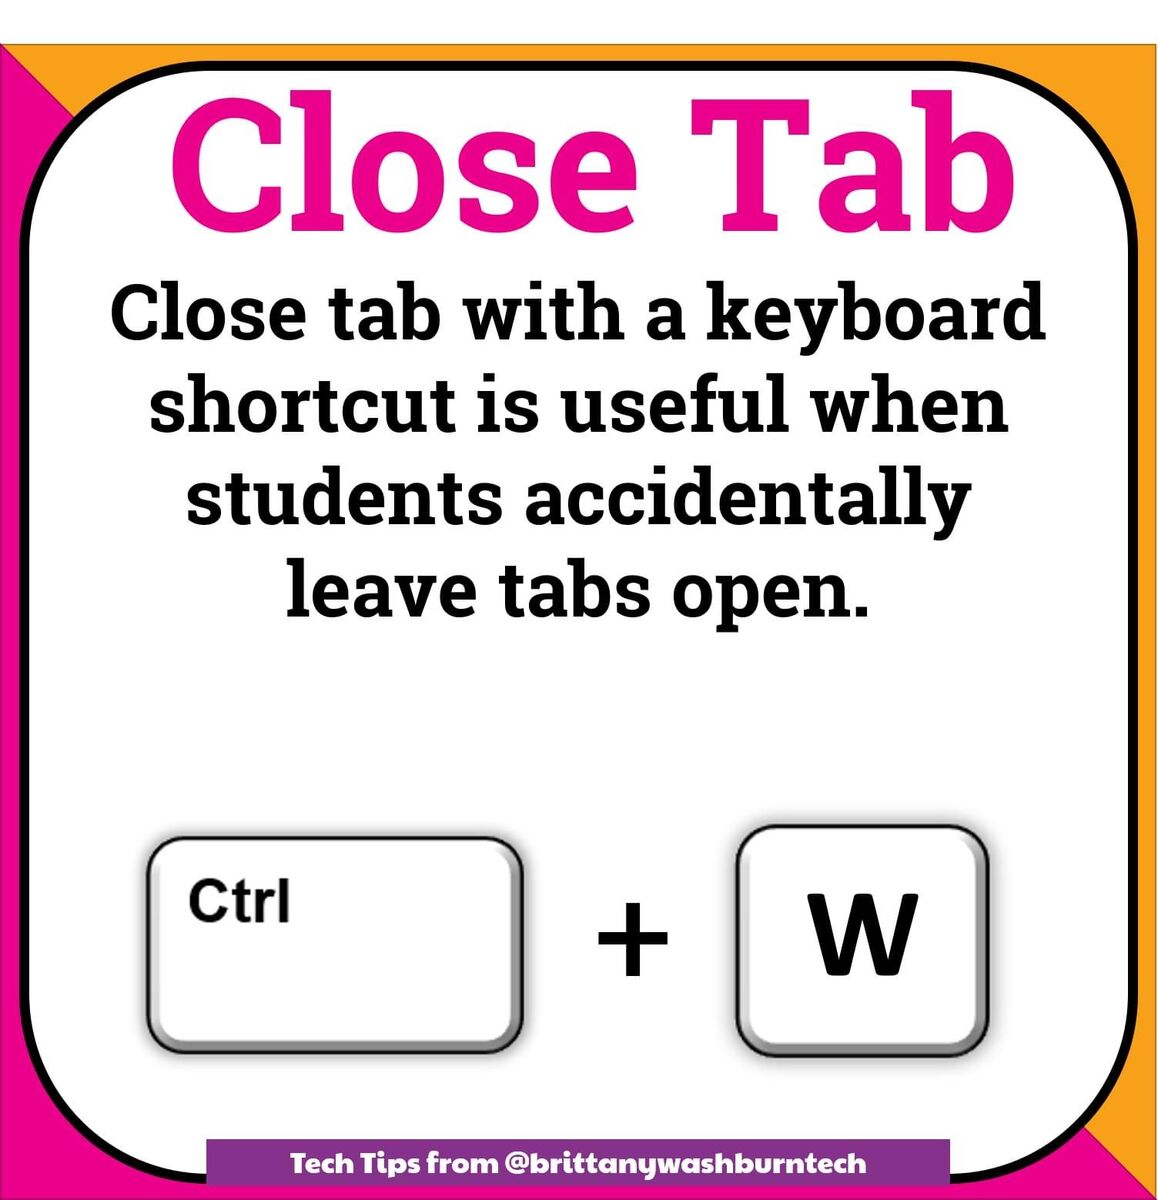 Close tab with keyboard shortcut Ctrl+W